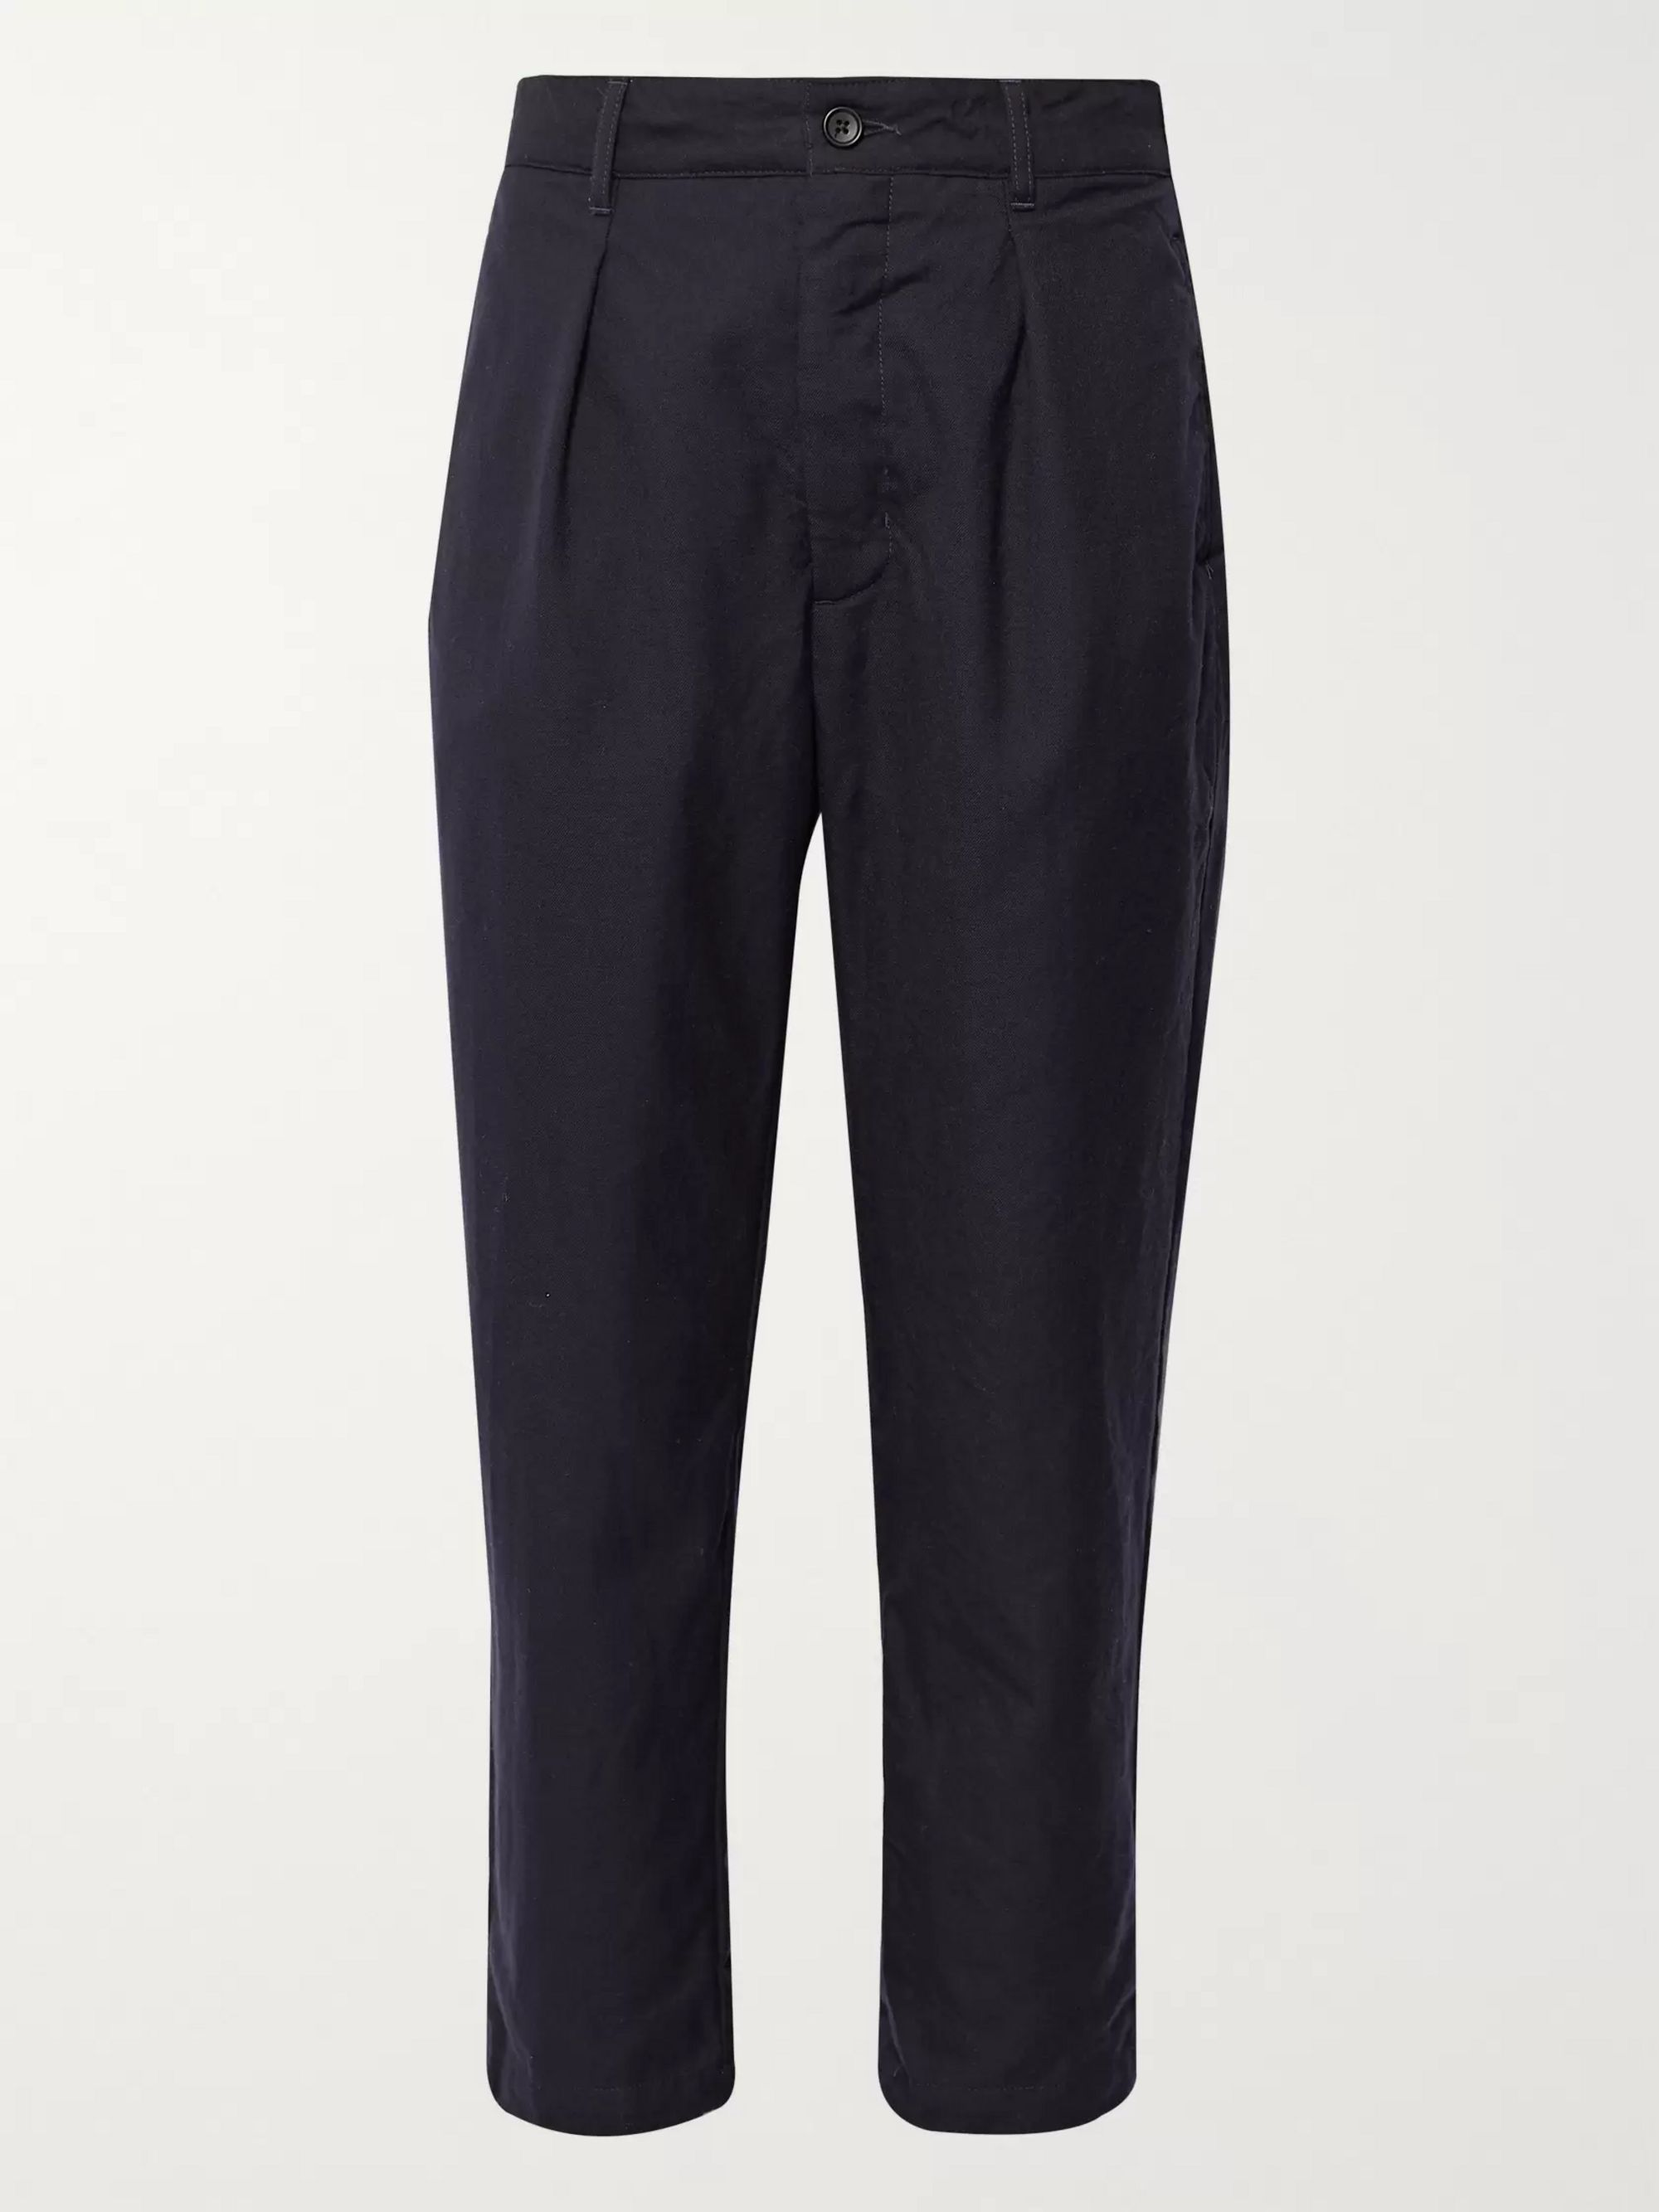 Engineered Garments Navy Pleated Wool Trousers